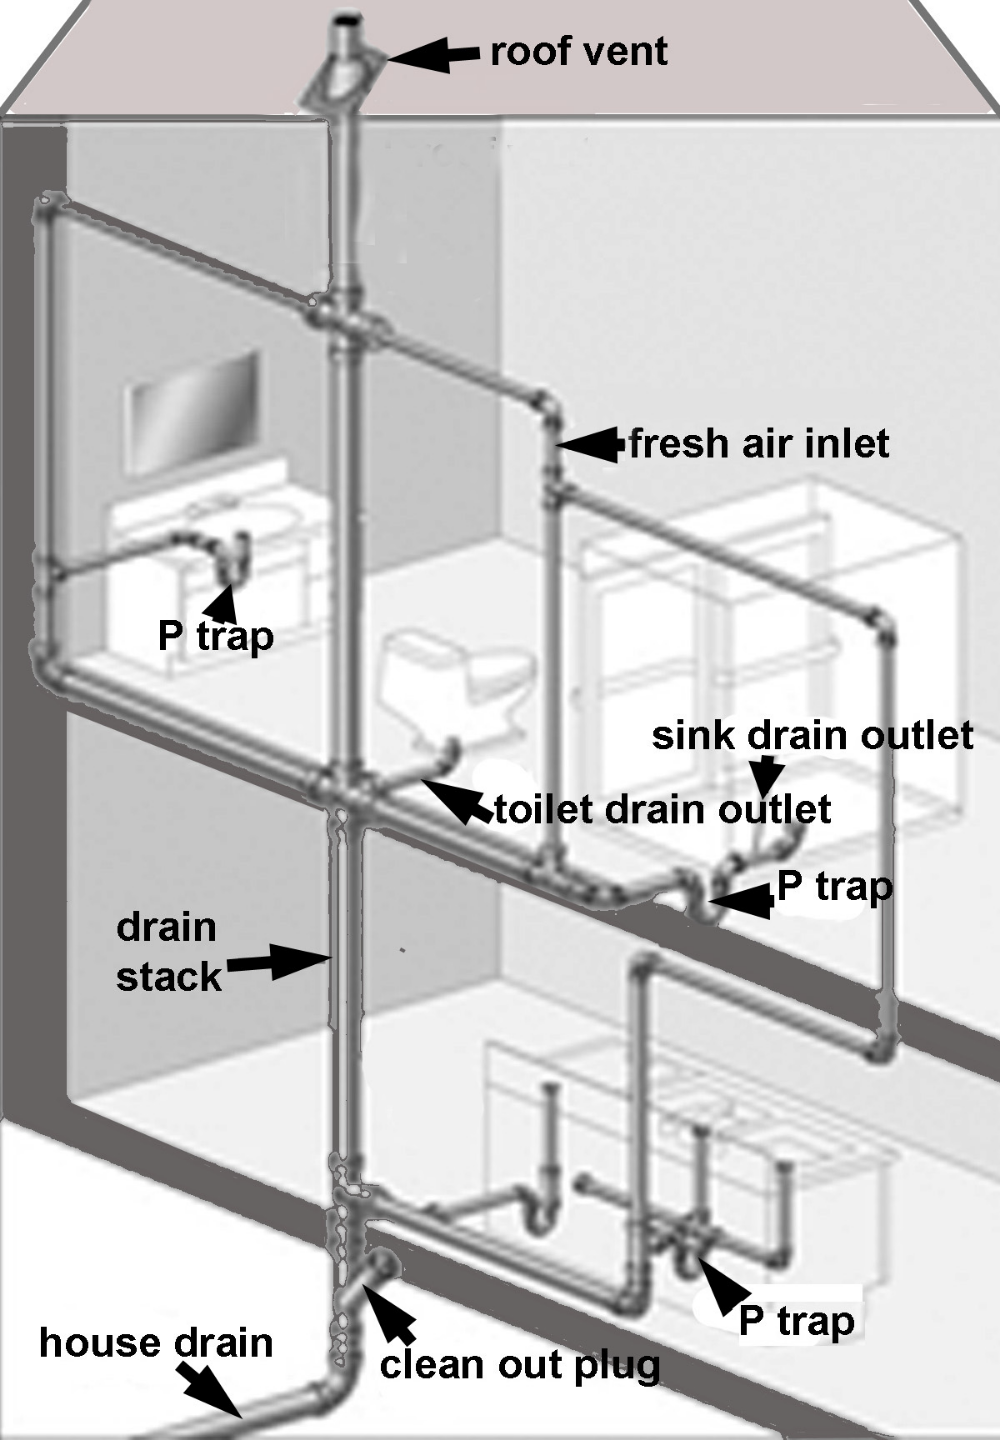 Learn About The Different Sewer Traps In Your Home And Their Function In 2020 House Drainage System Plumbing Bathroom Vent